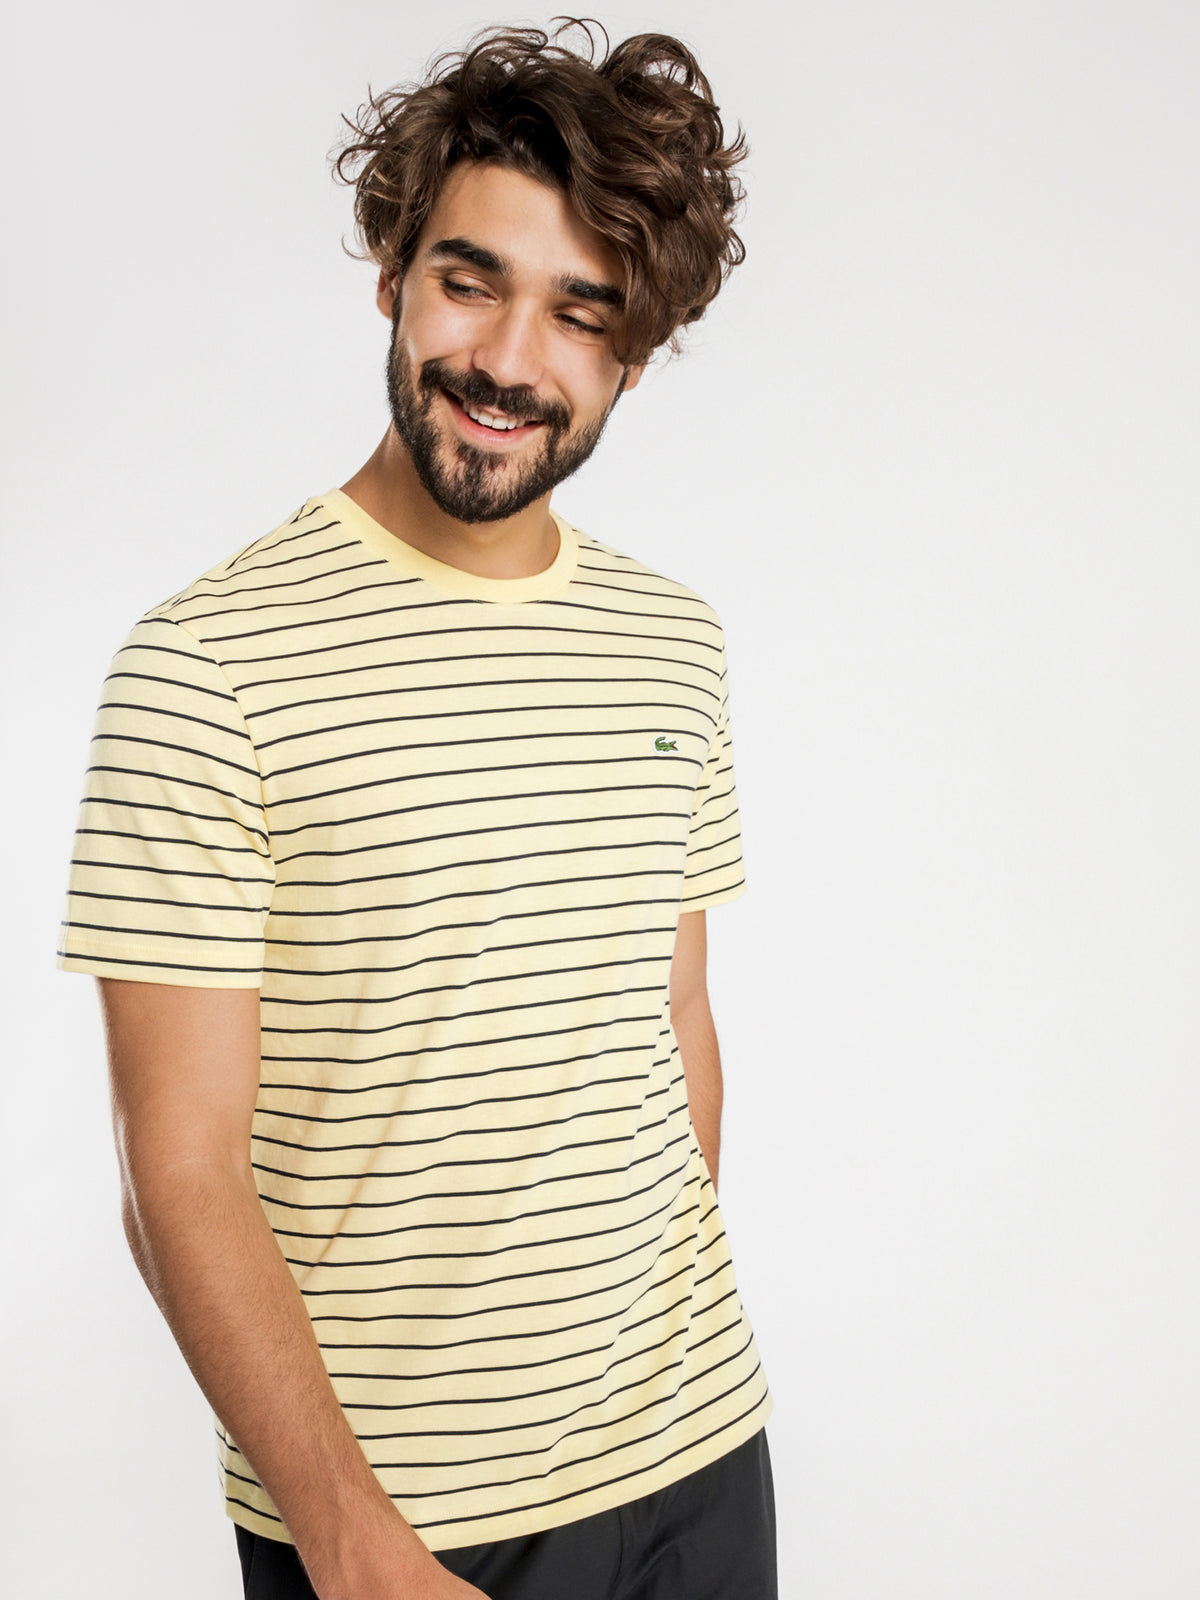 Jersey T-Shirt in Yellow & White Stripe